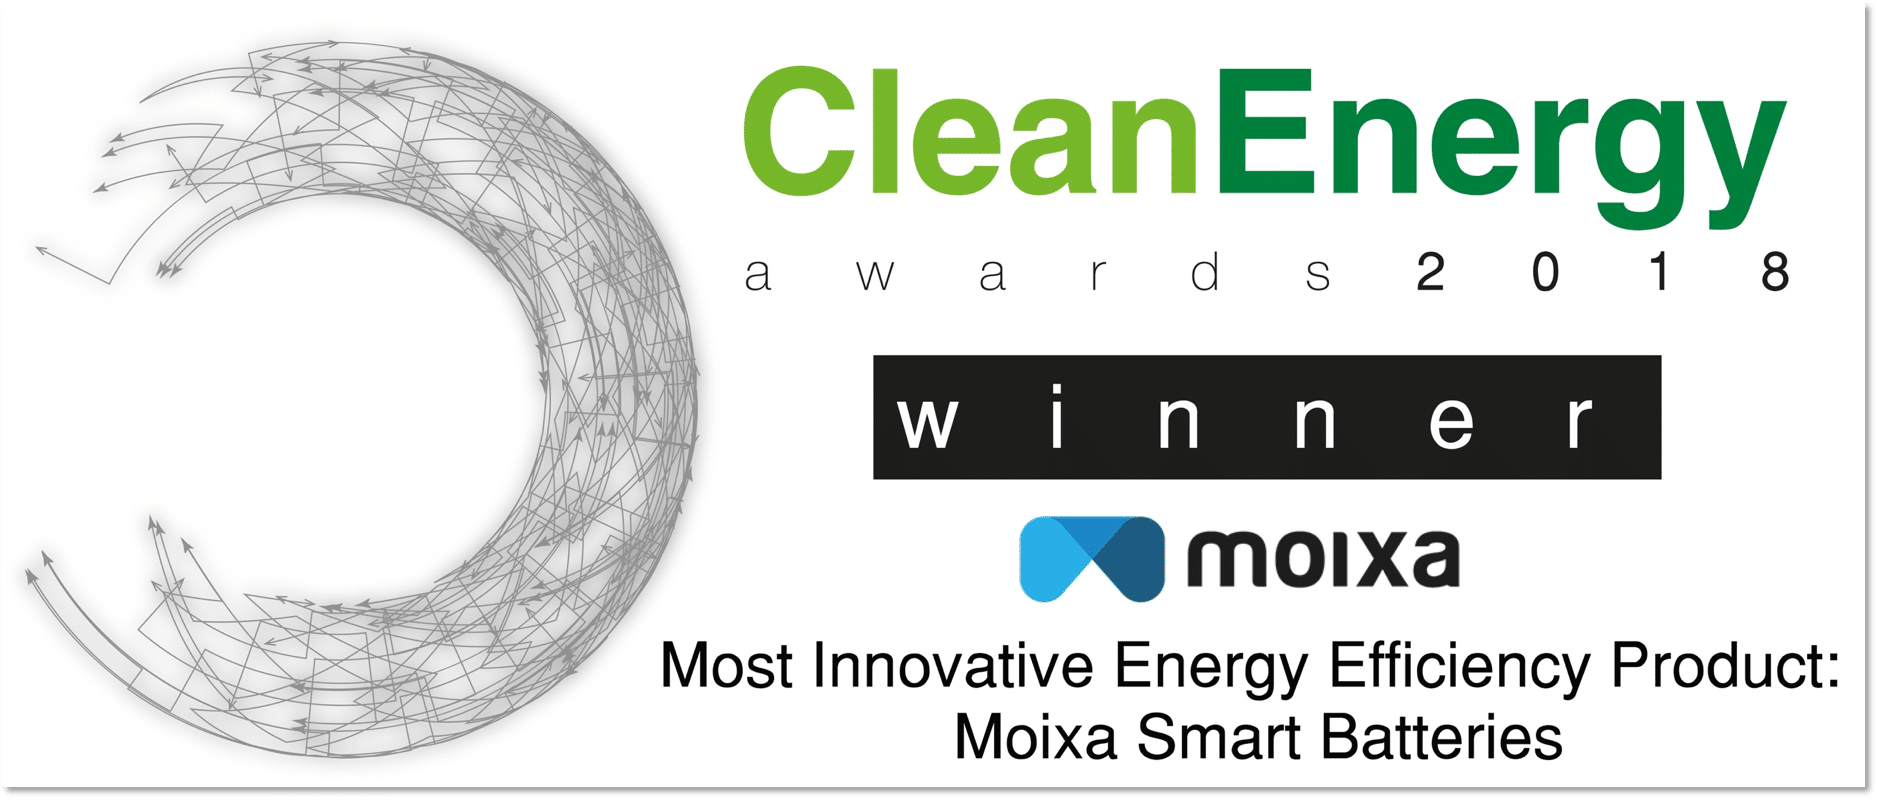 Clean Energy Awards